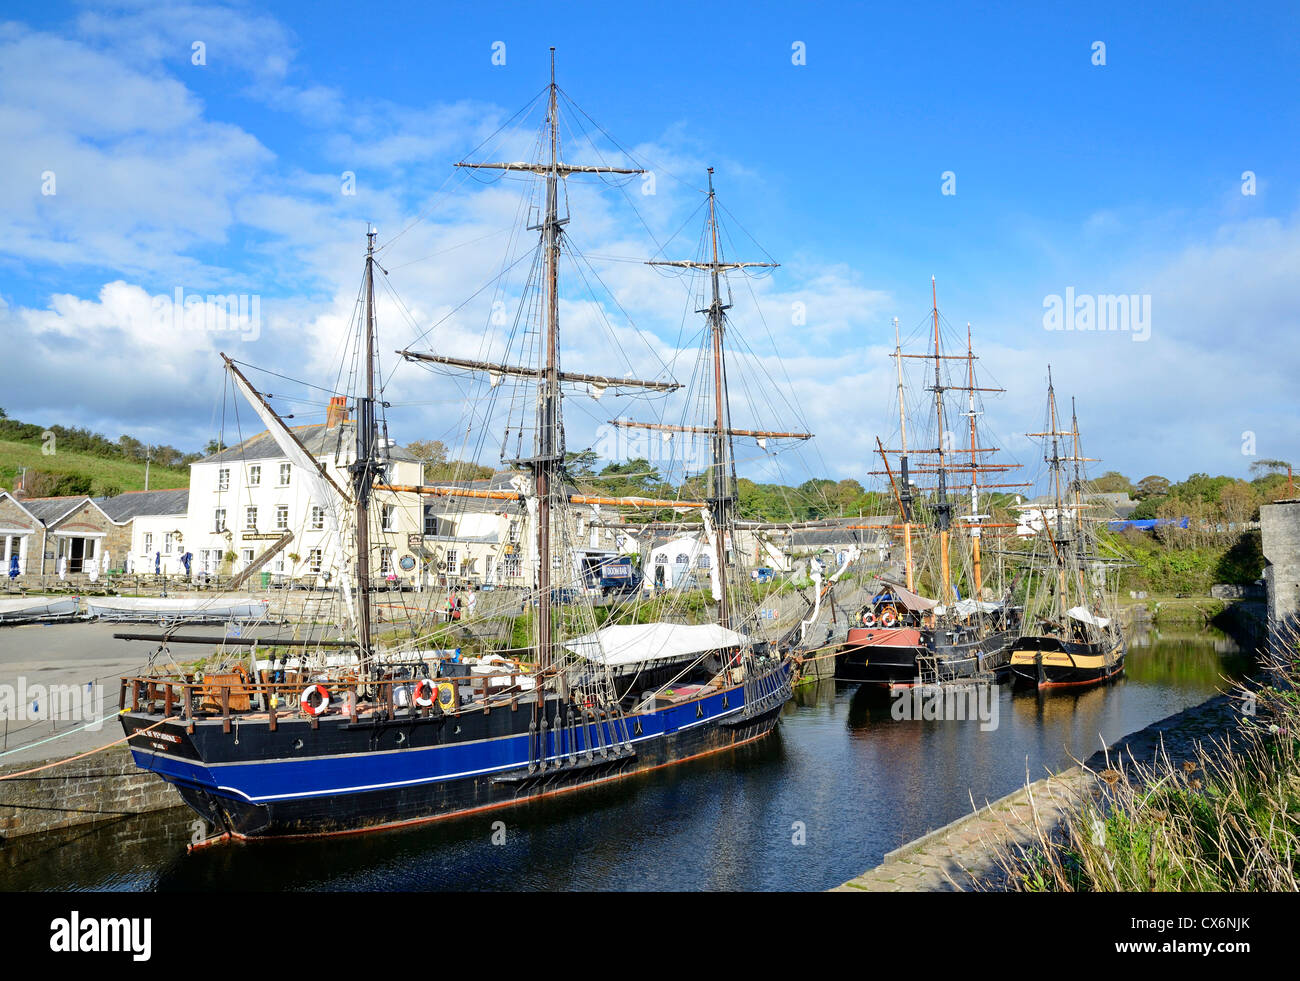 Tall ships in the historic harbour at Charlestown, Cornwall, UK - Stock Image